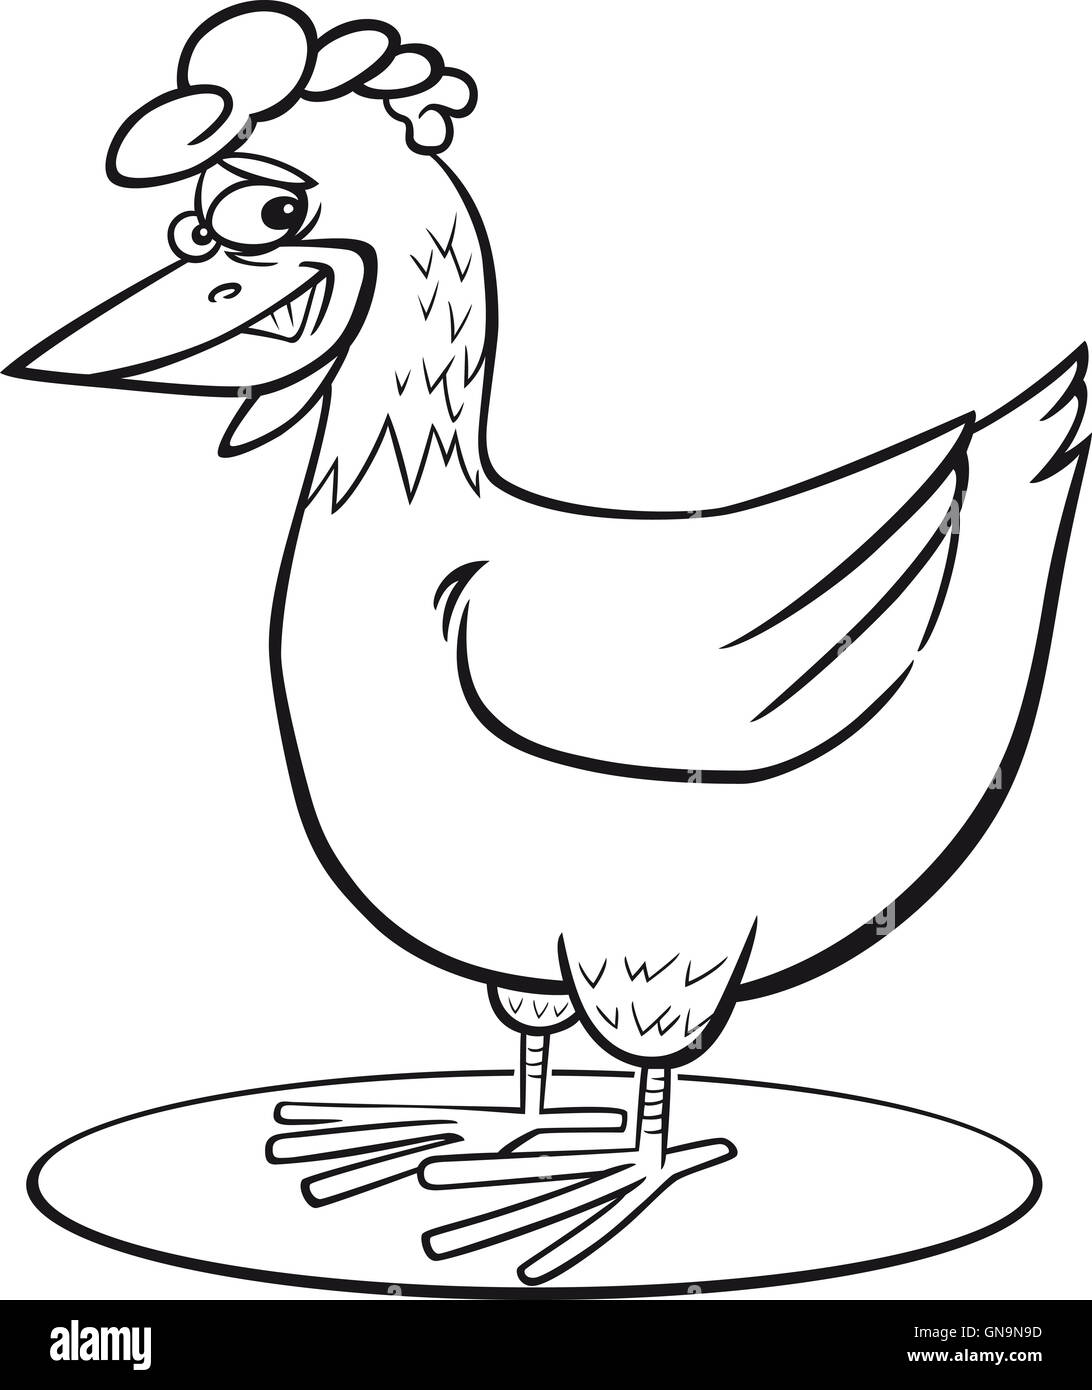 Cartoon hen coloring page Stock Photo: 116384281 - Alamy